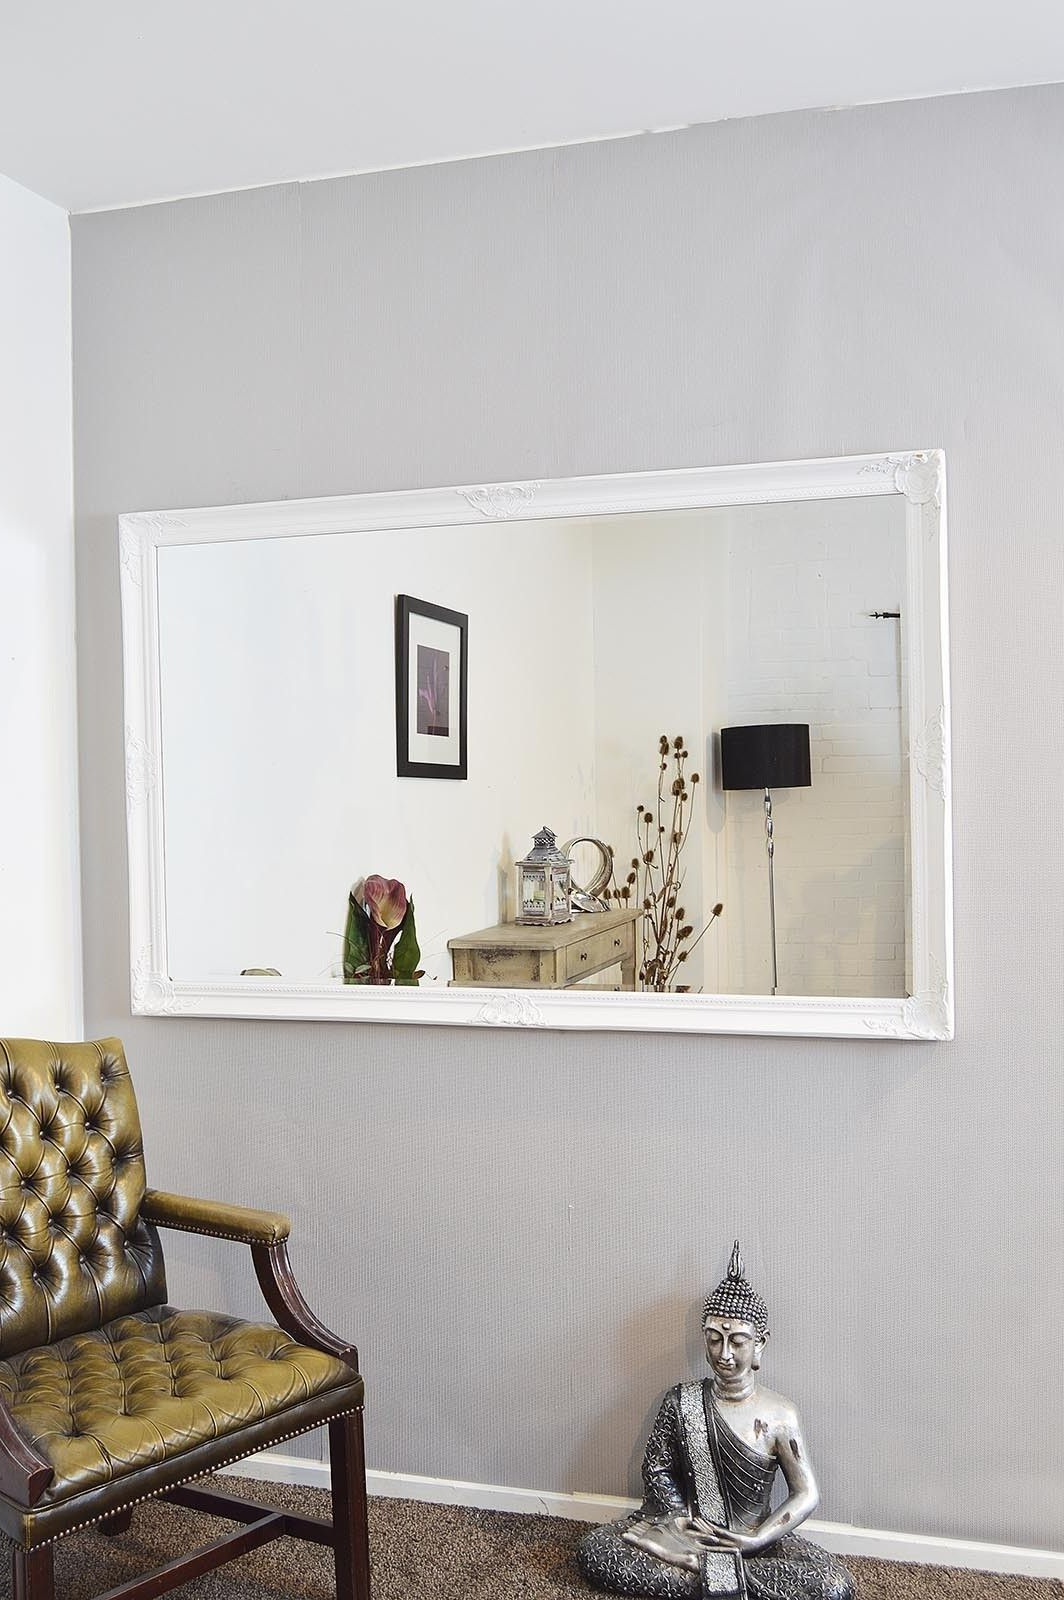 2019 Extra Large White Full Length Antique Bevelled Wall Mirror Intended For Long White Wall Mirrors (View 5 of 20)